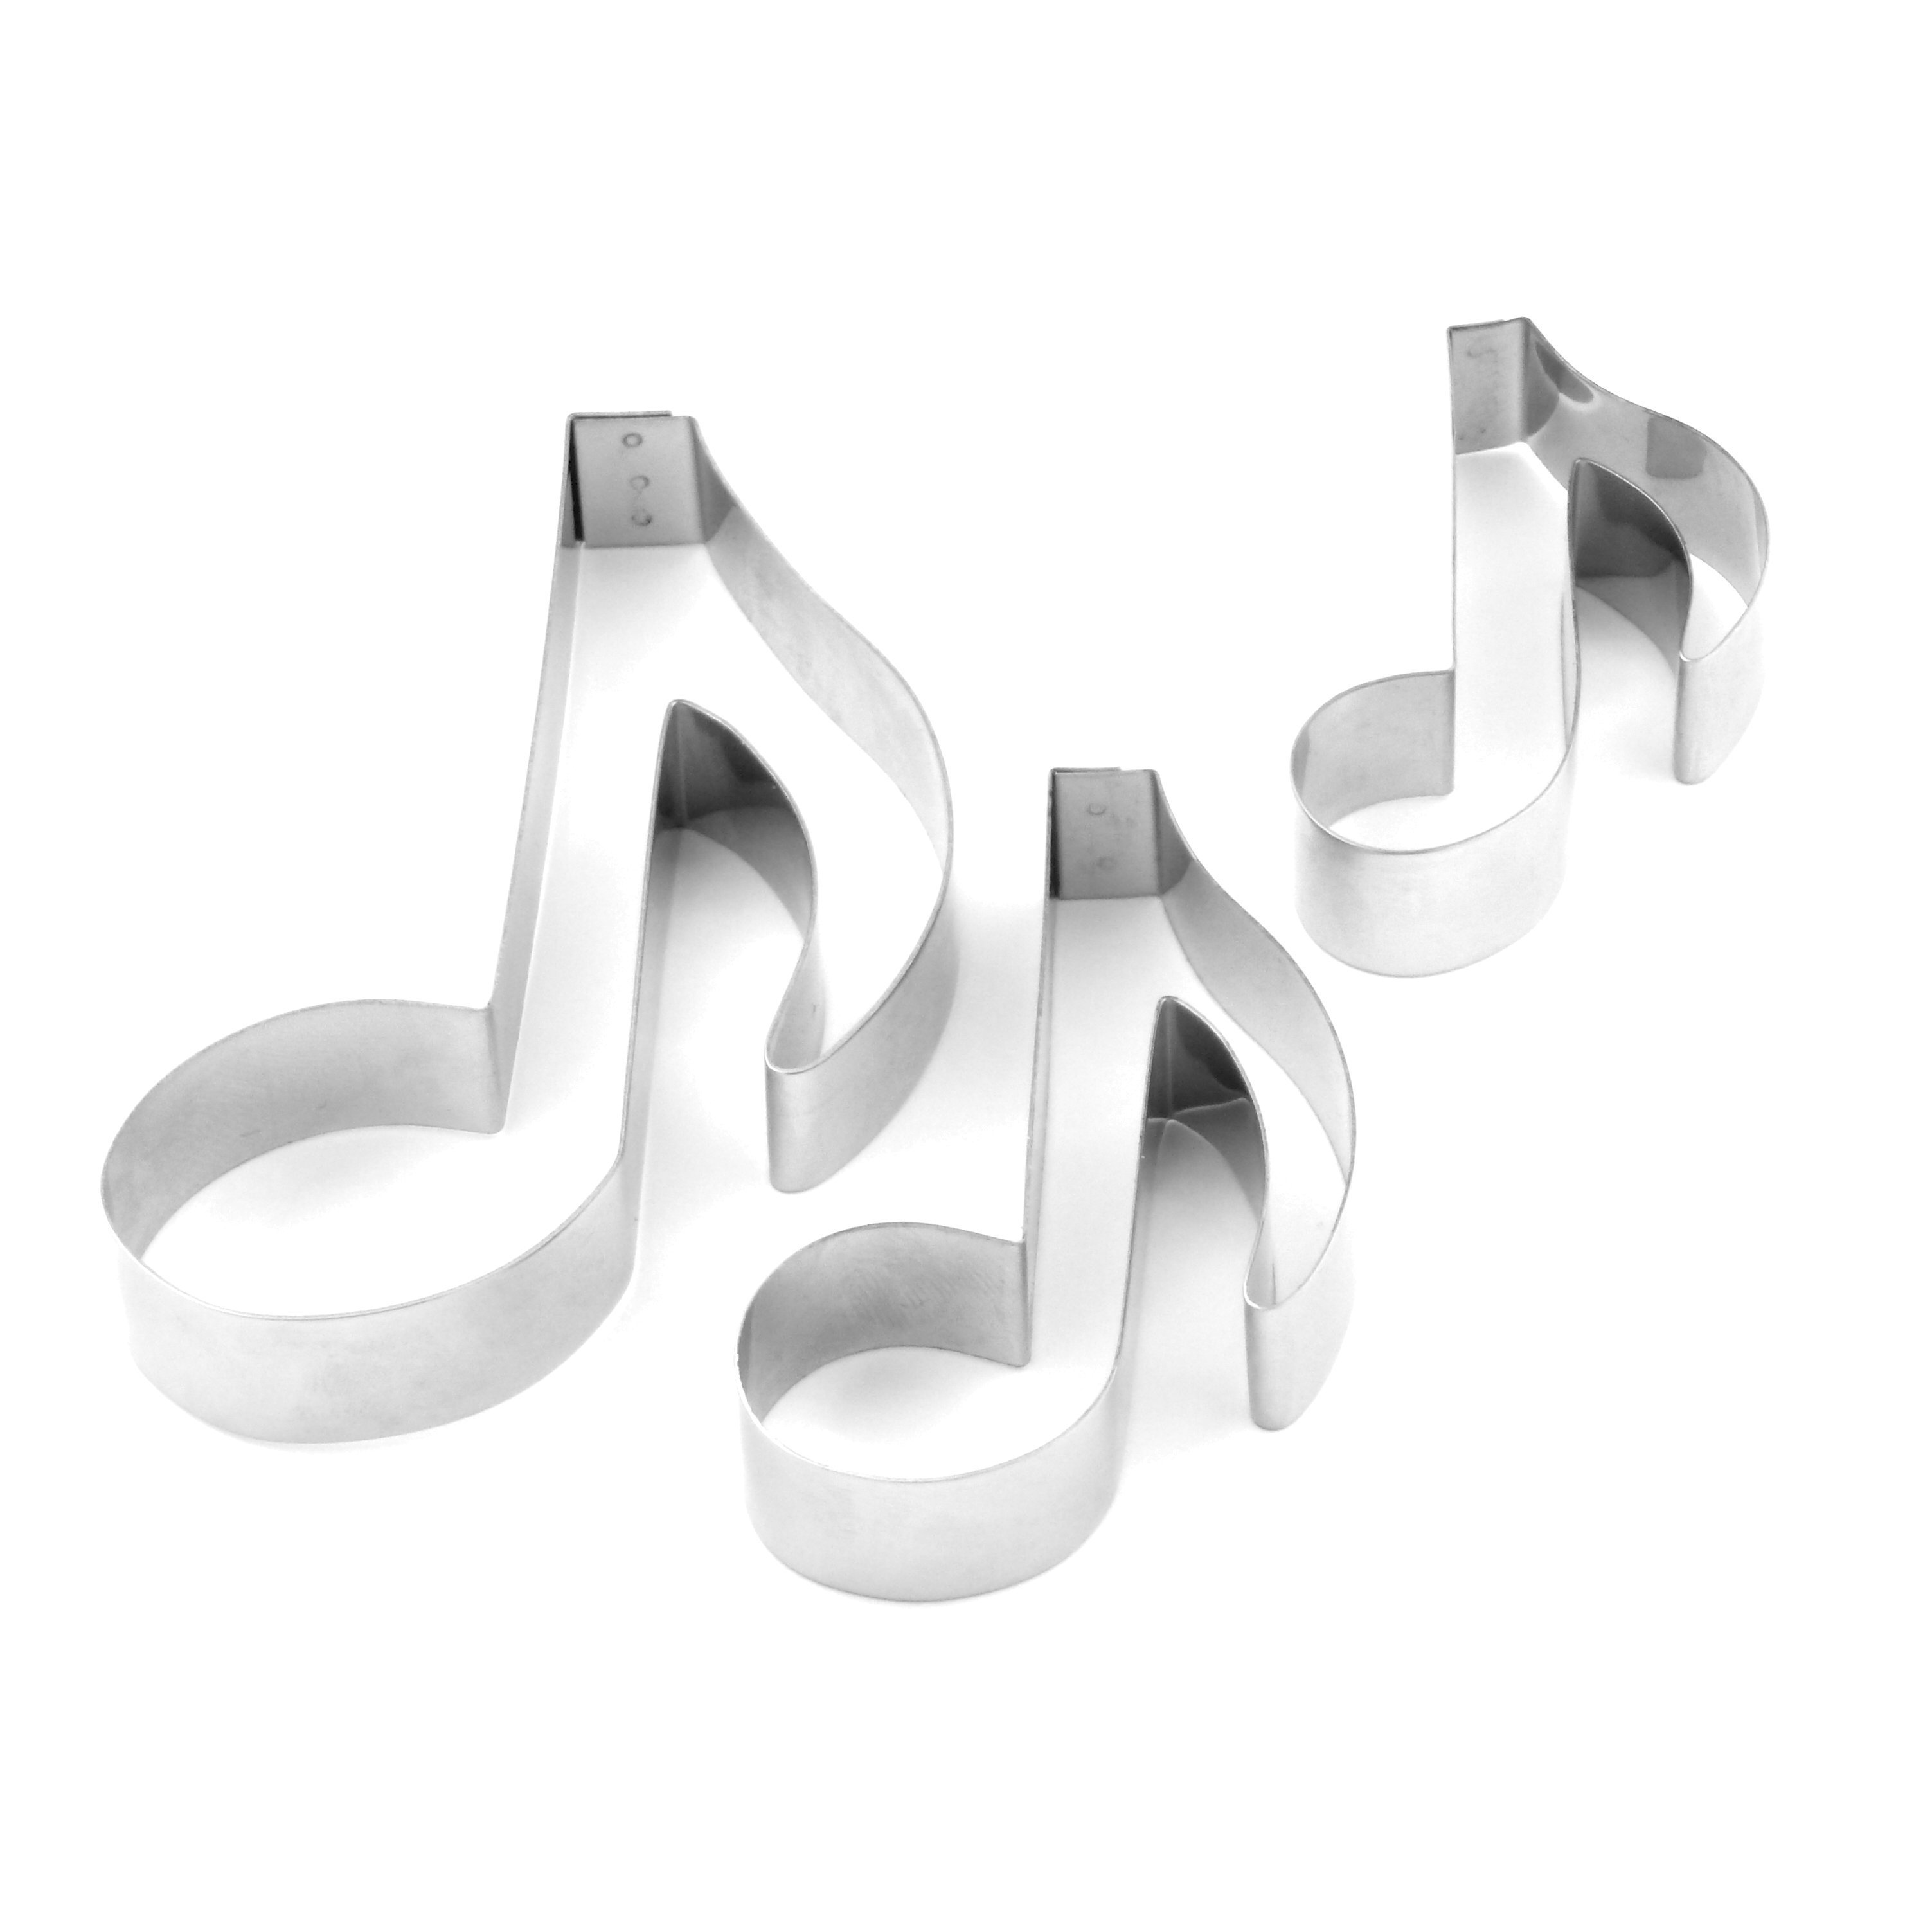 Musical Note Sugarcraft Cutters - Set of 3 (Lindy's) SKU18840